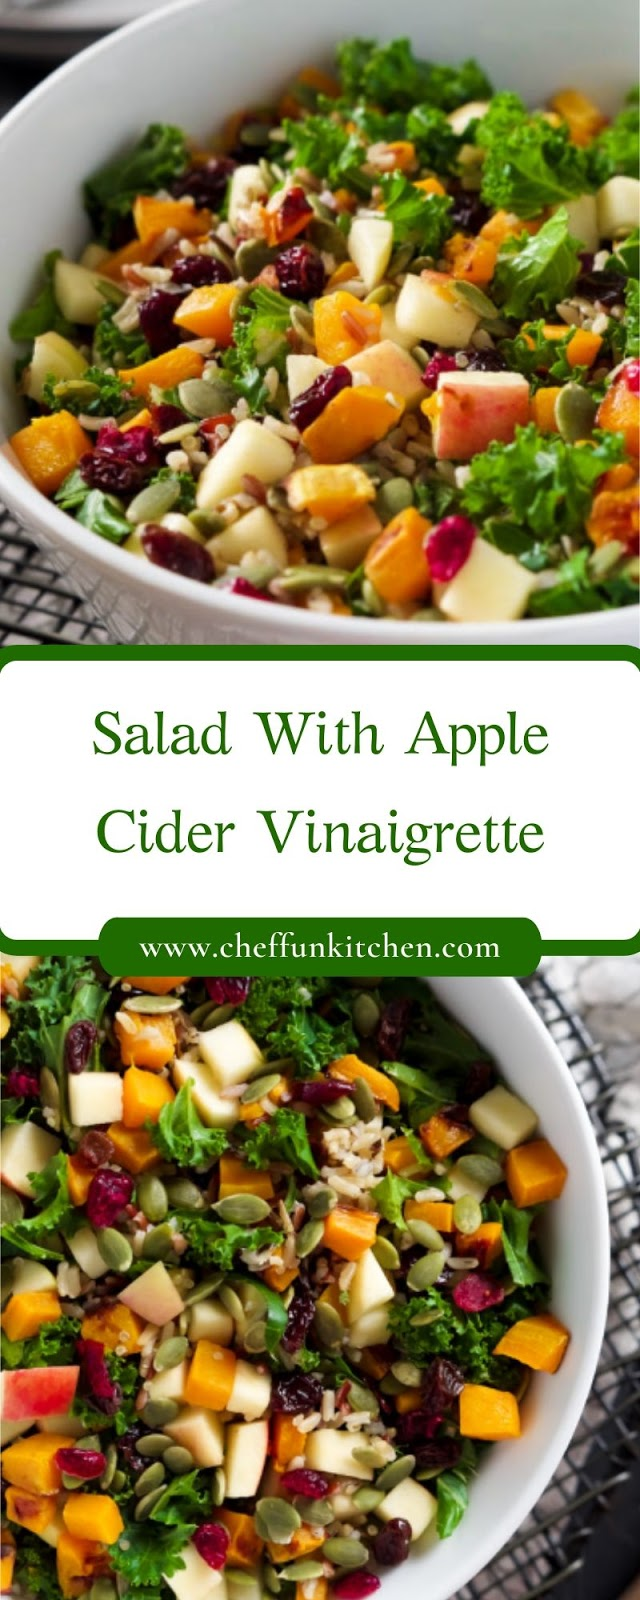 Salad With Apple Cider Vinaigrette